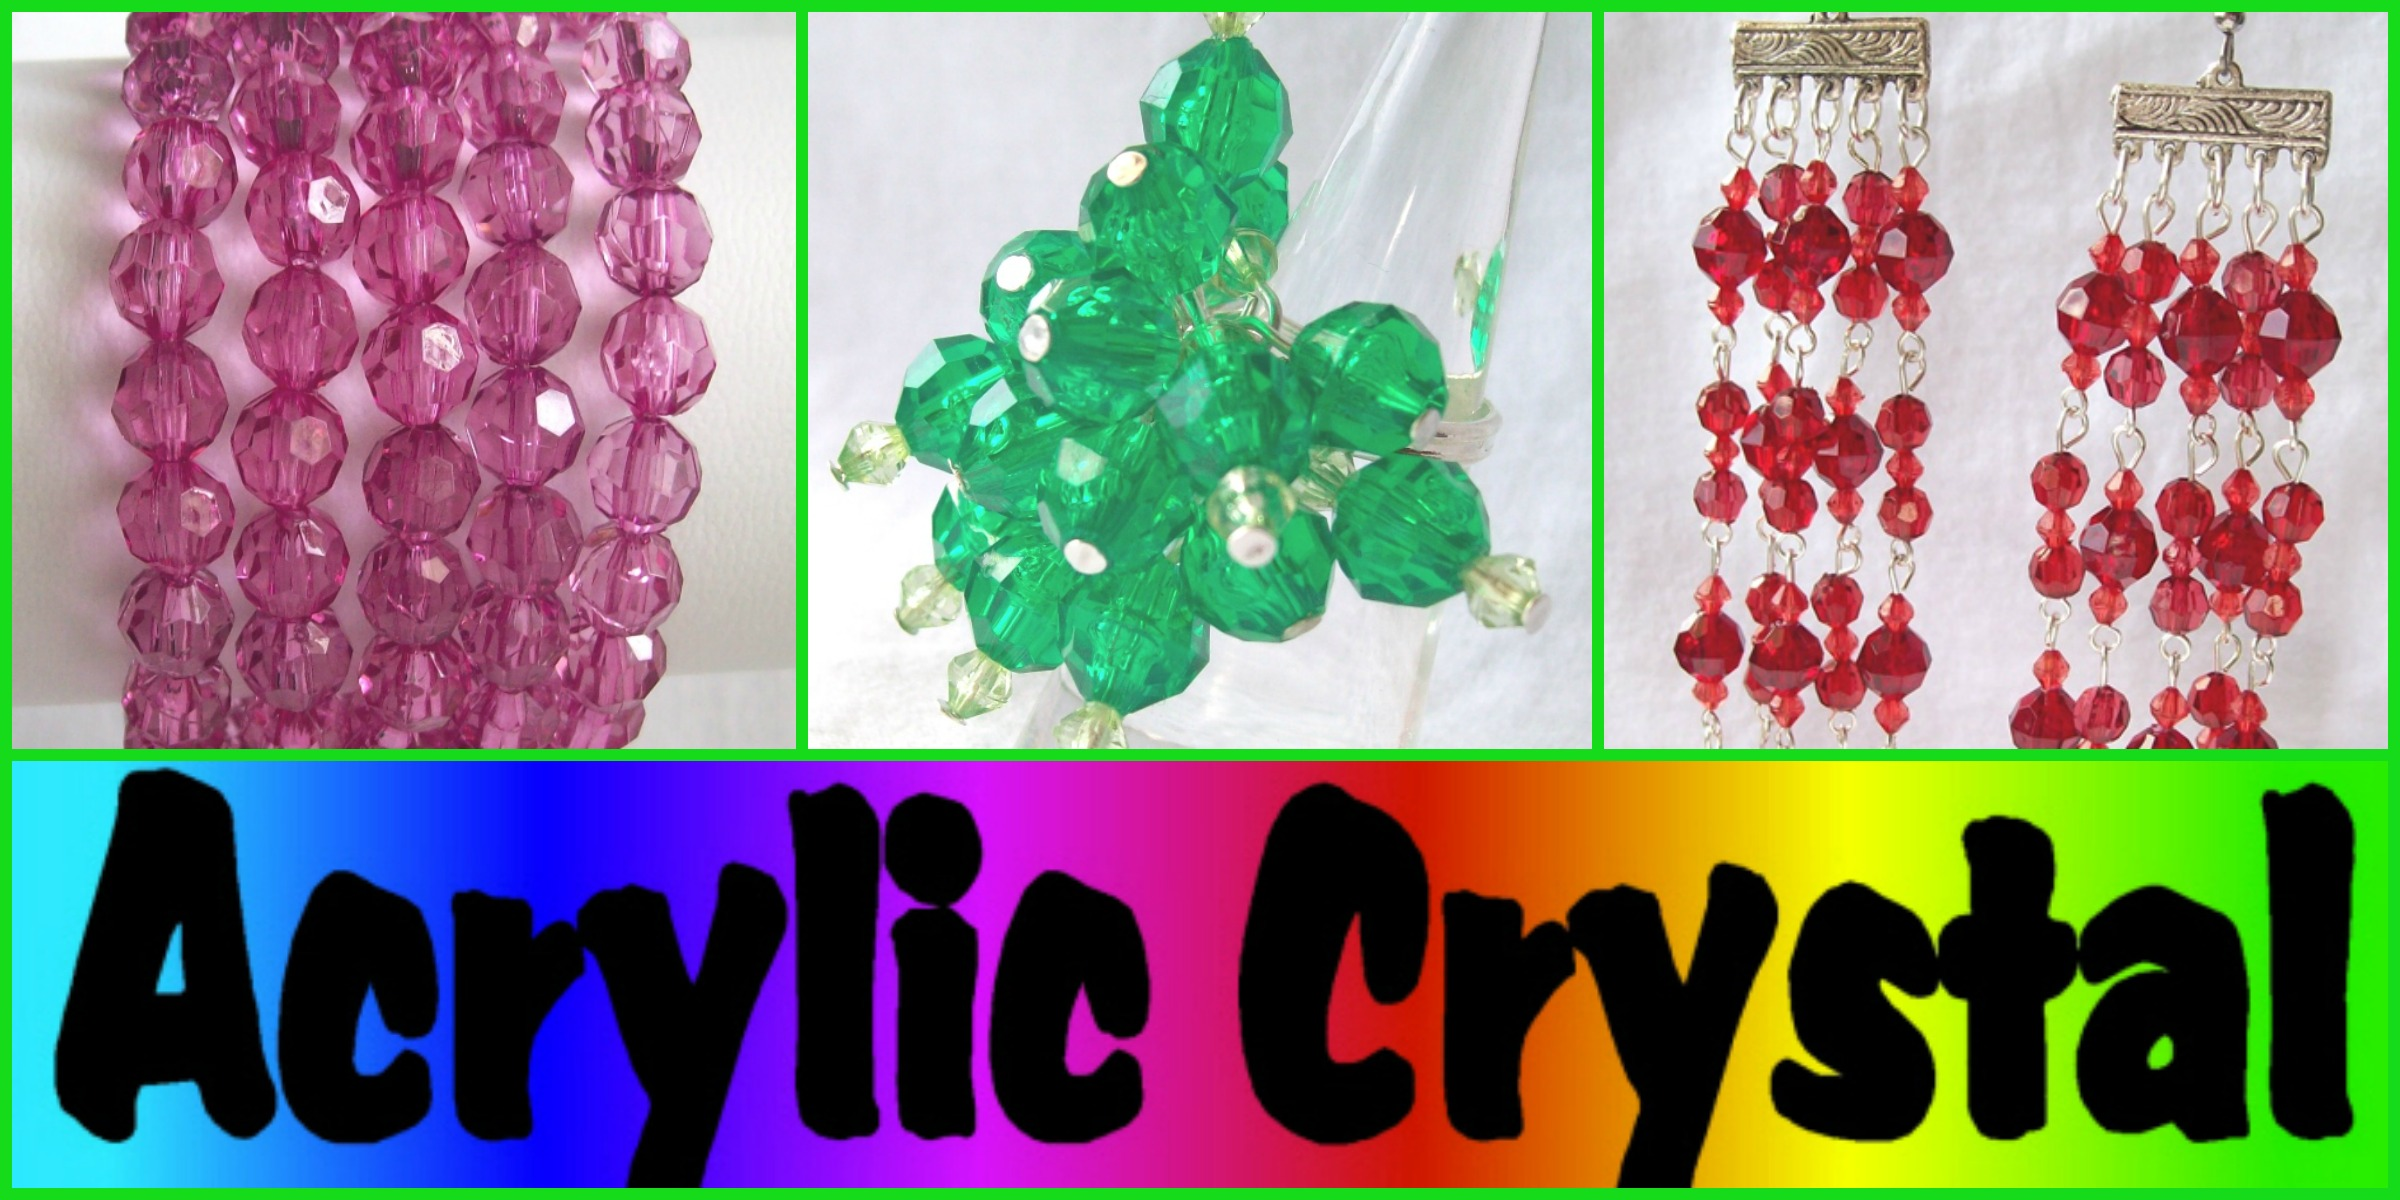 ACRYLIC CRYSTAL: Available now at Jewel Divas